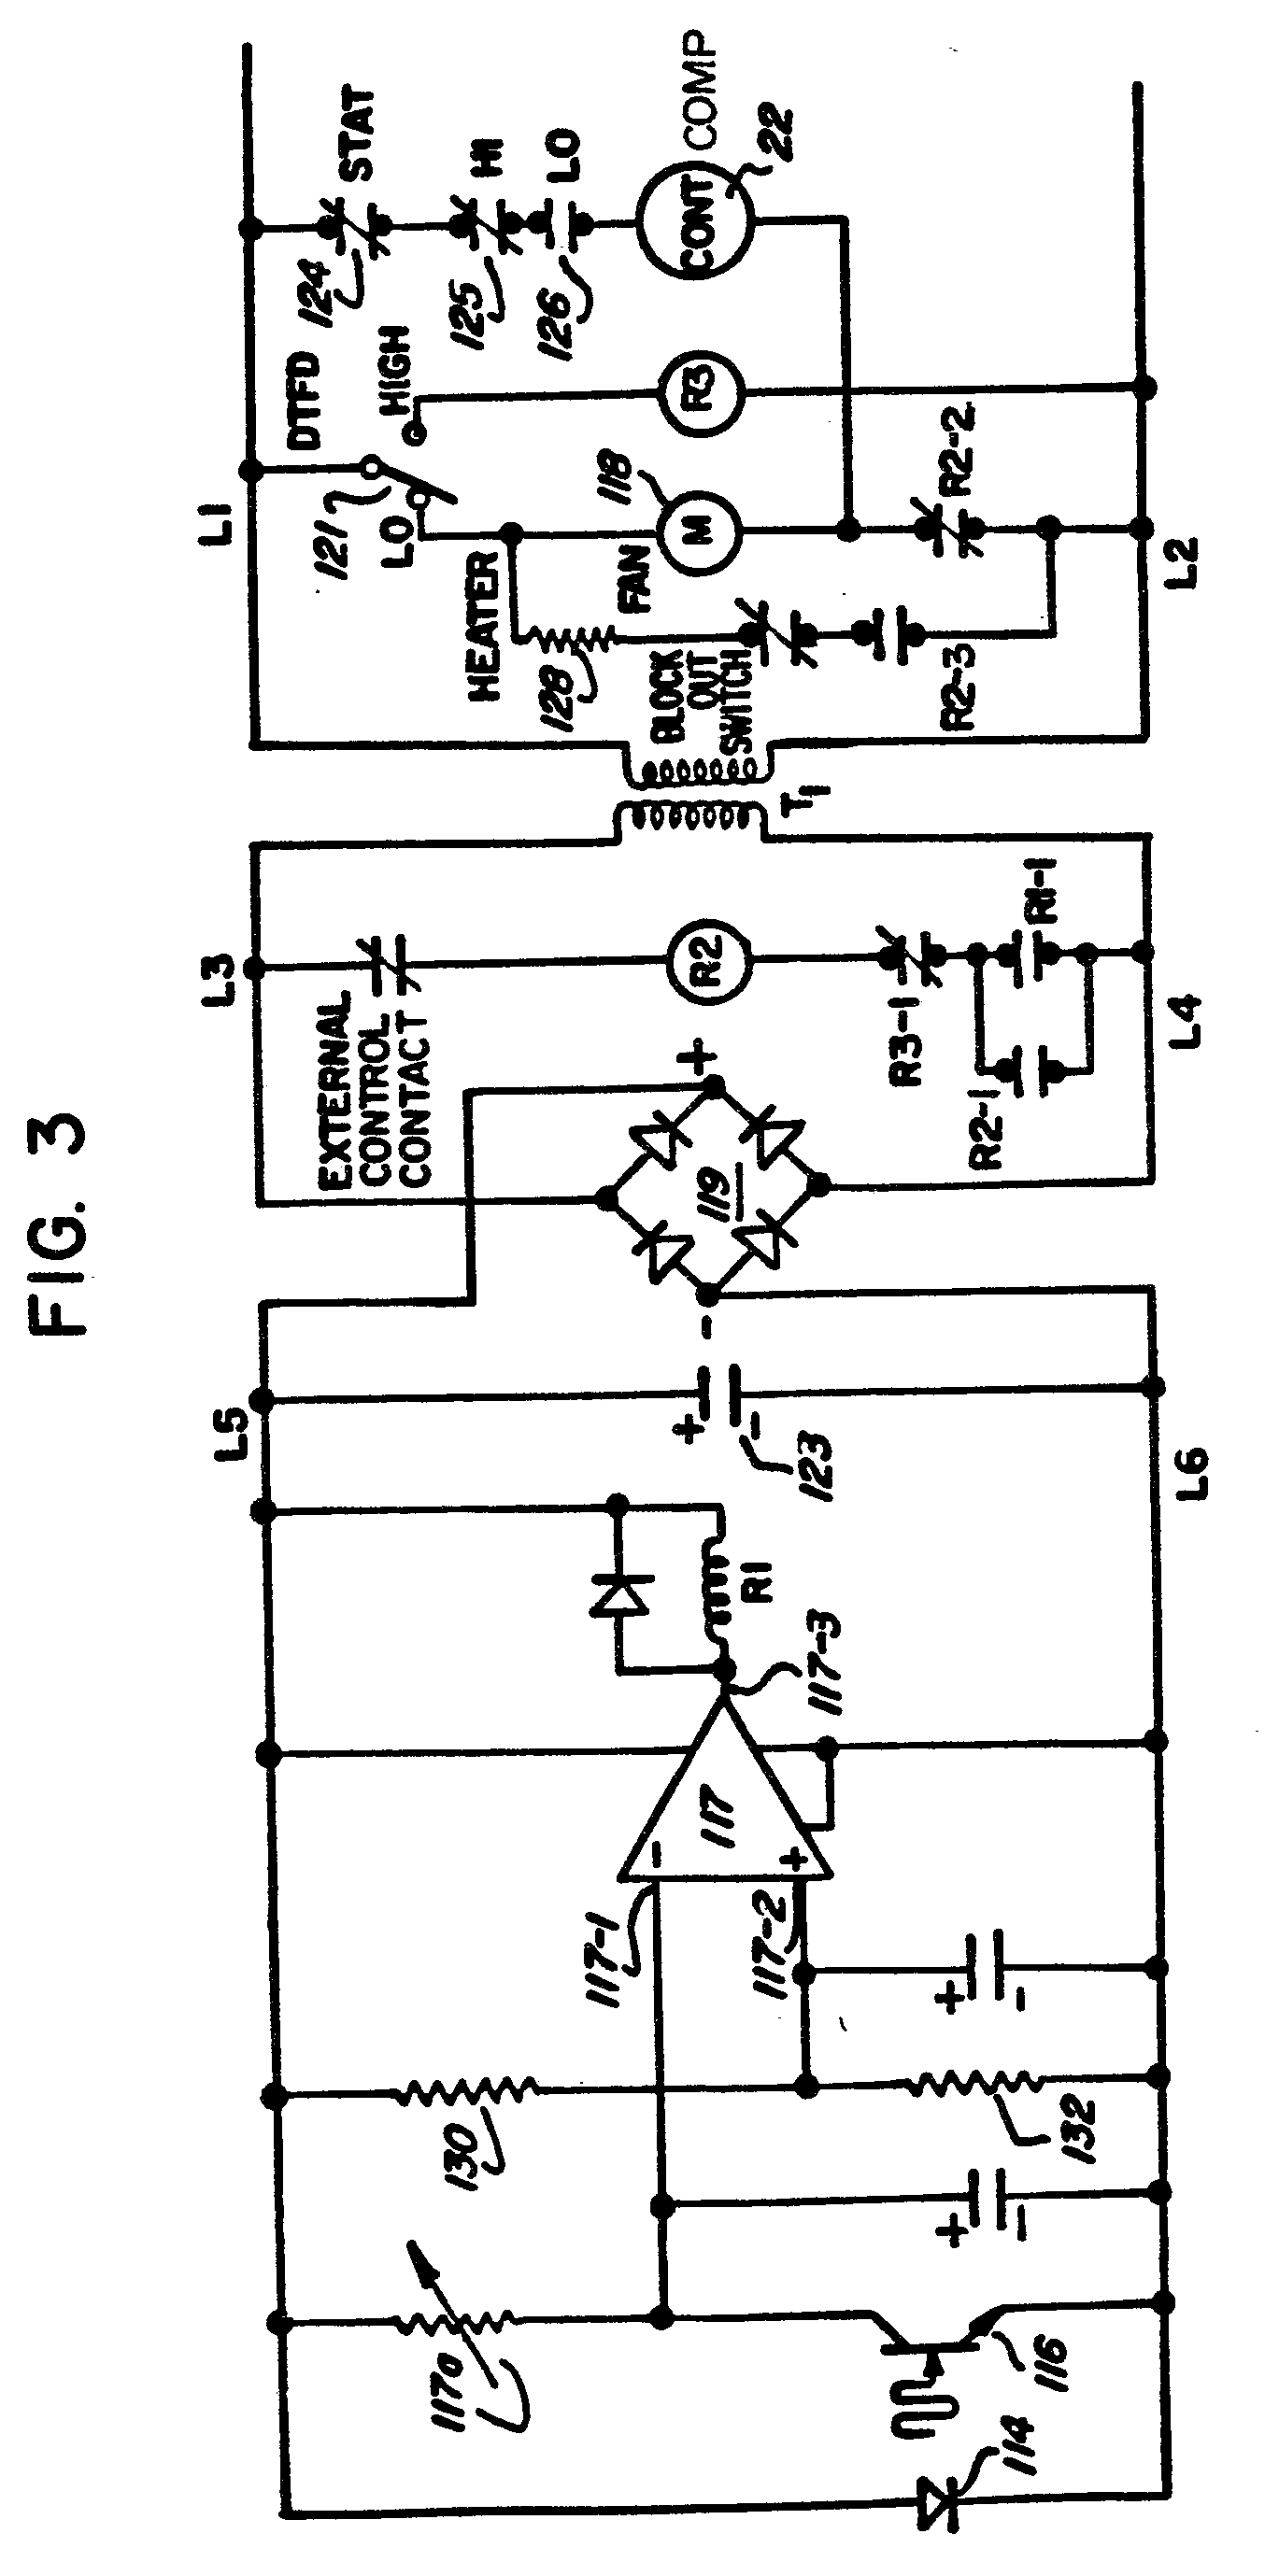 Switch Wiring Diagram Furthermore 2 Humbucker Wiring Diagrams On